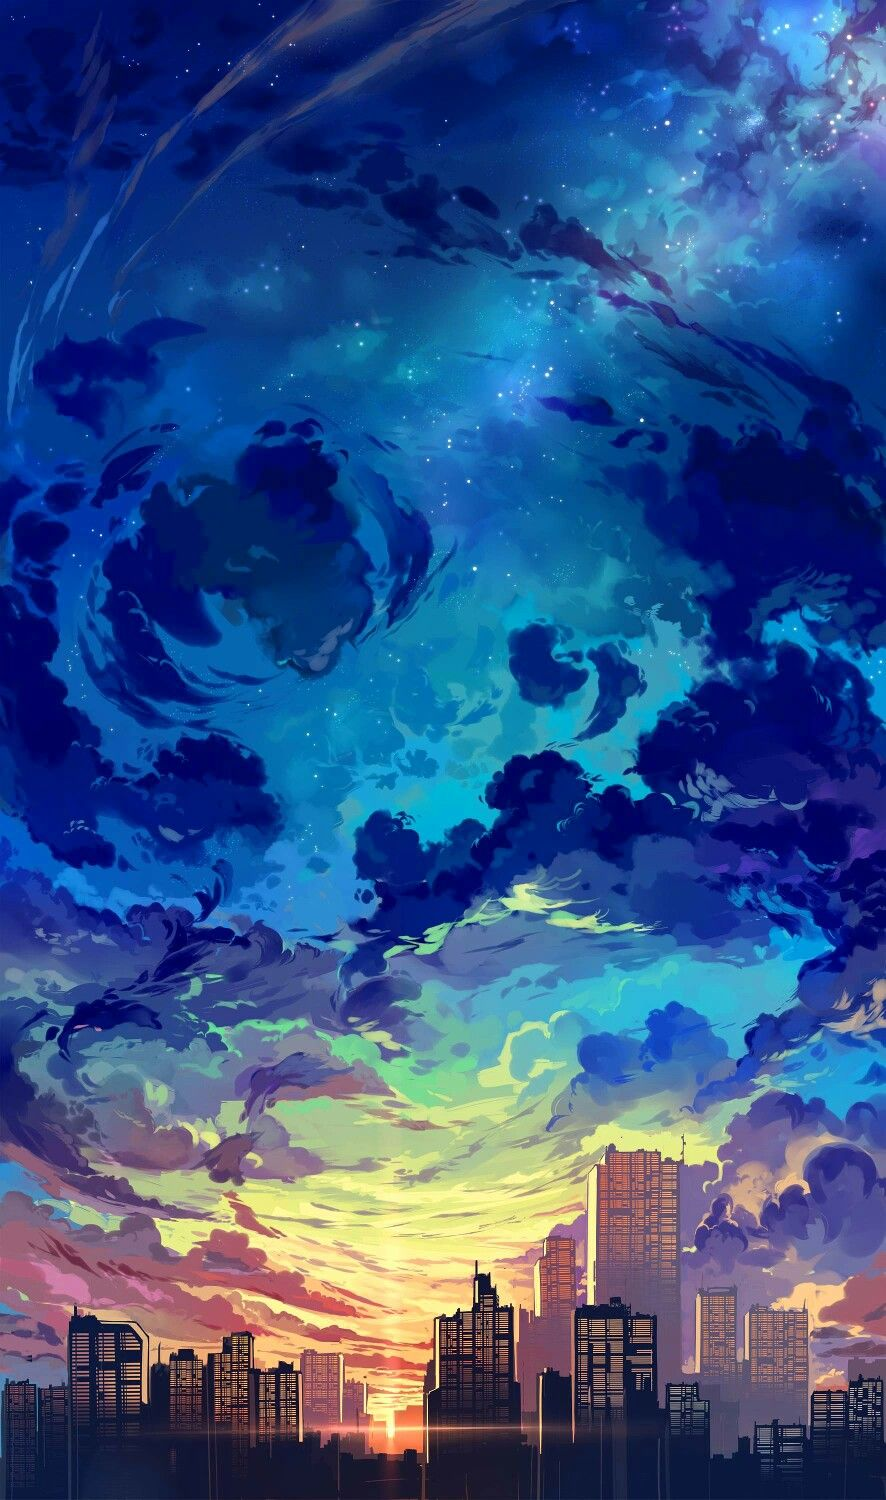 #sky #clouds #painting #city #blue Anime Backgrounds Wallpapers, Anime Scenery